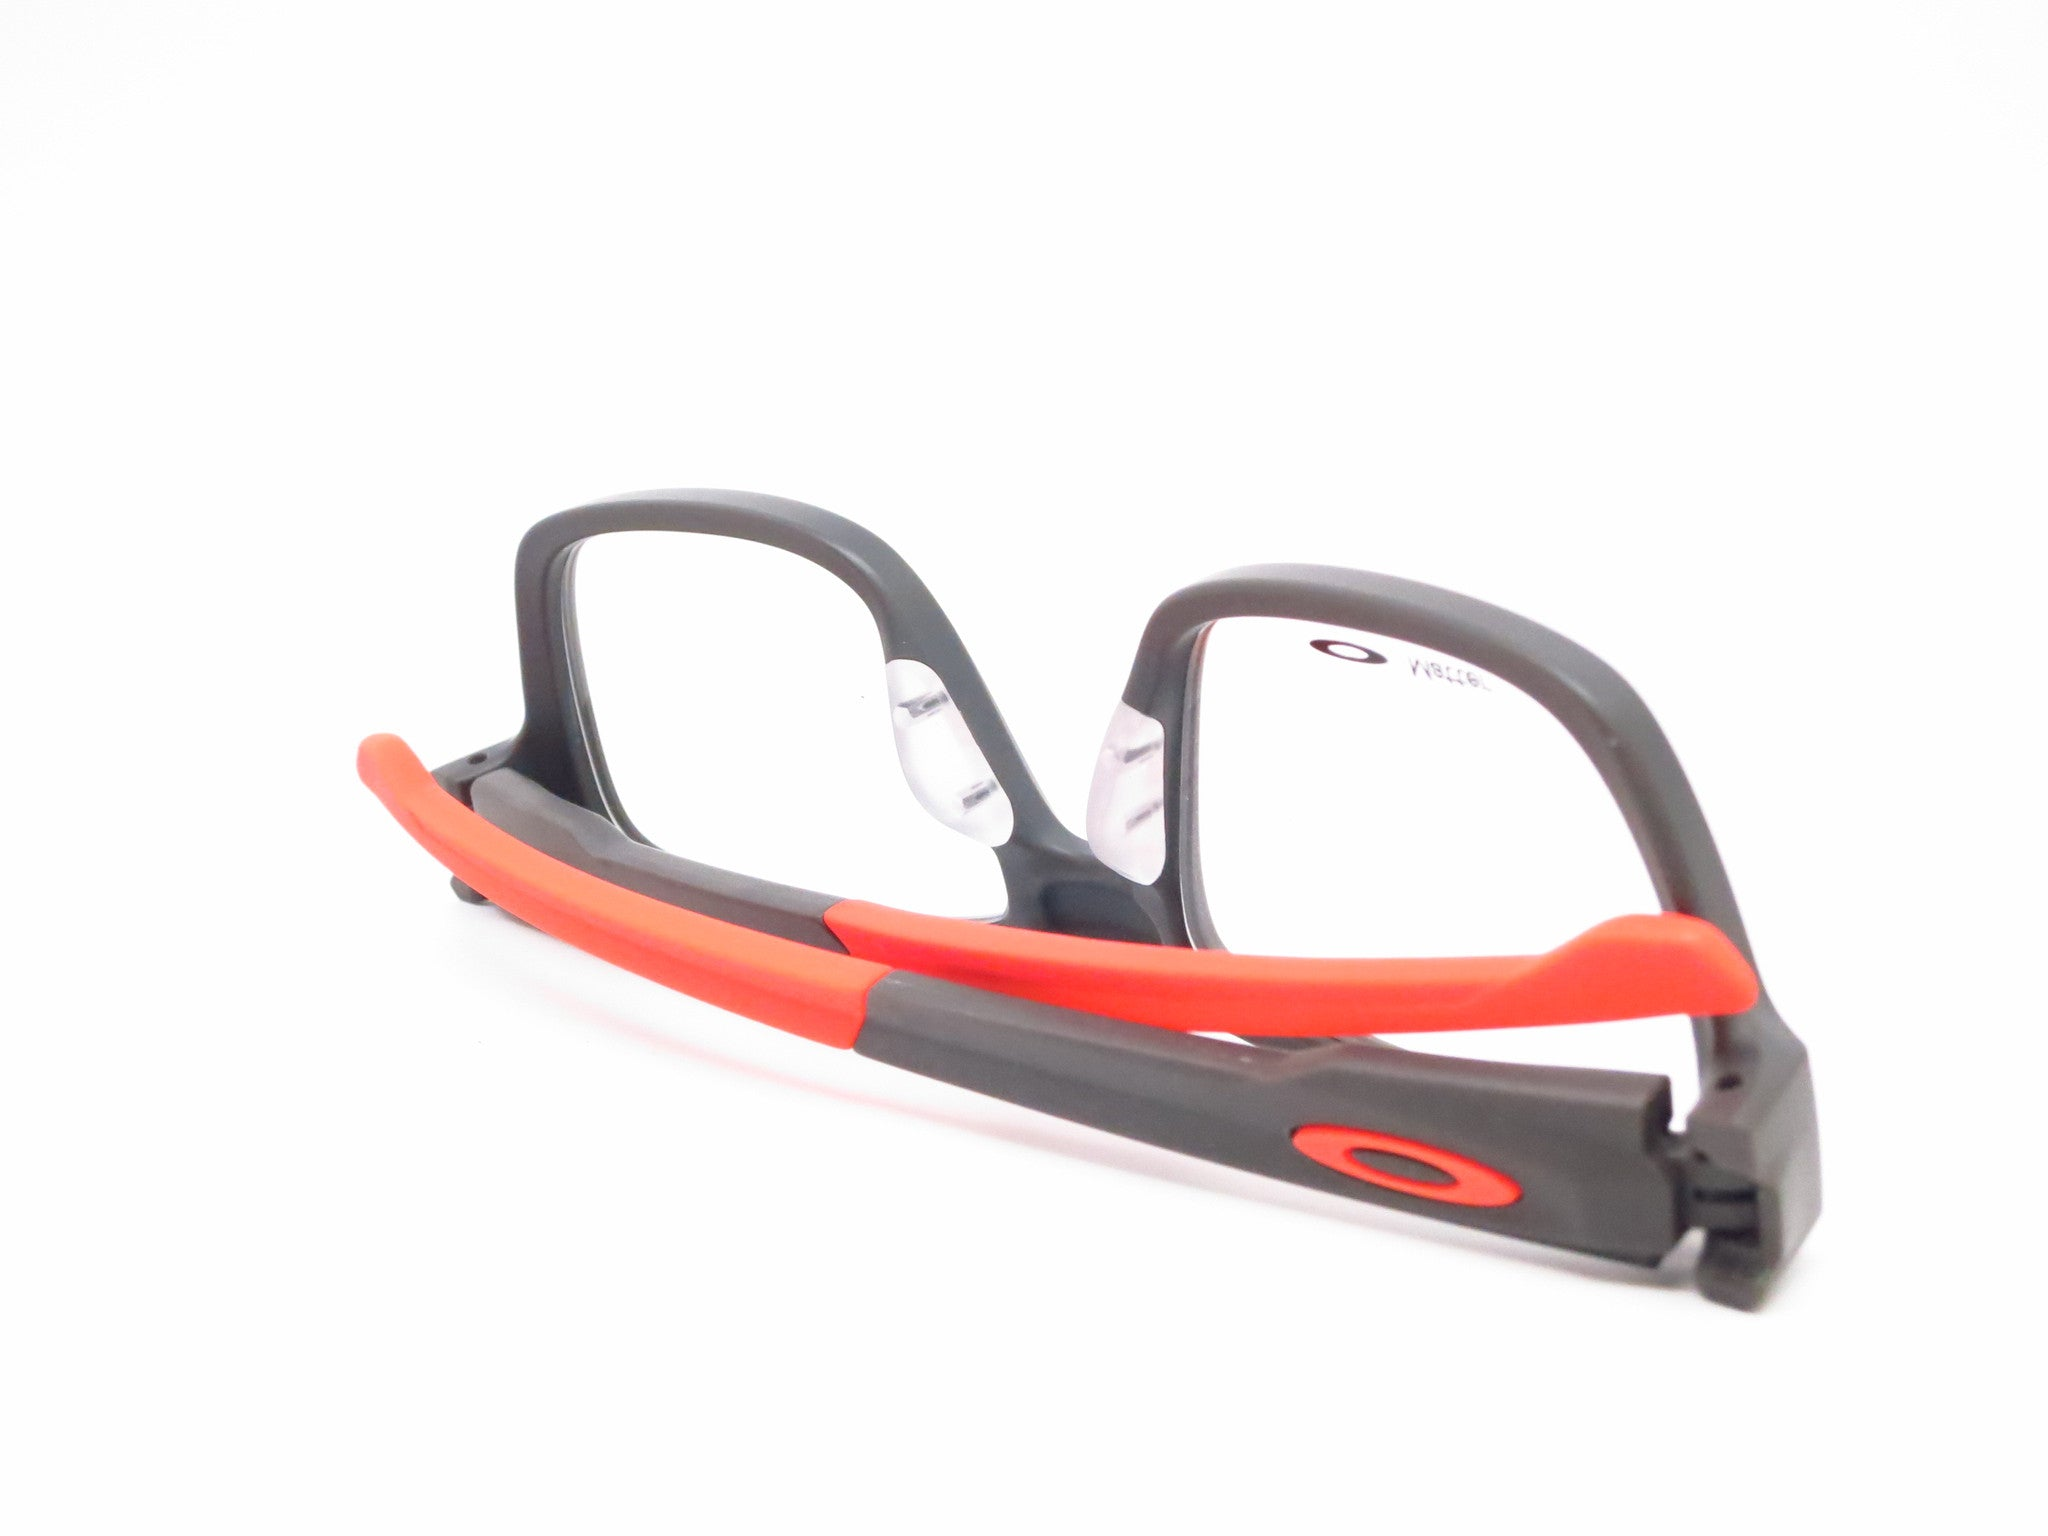 oakley splinter  Oakley Splinter OX8077-0552 Satin Flint / Orange Eyeglasses - Eye ...